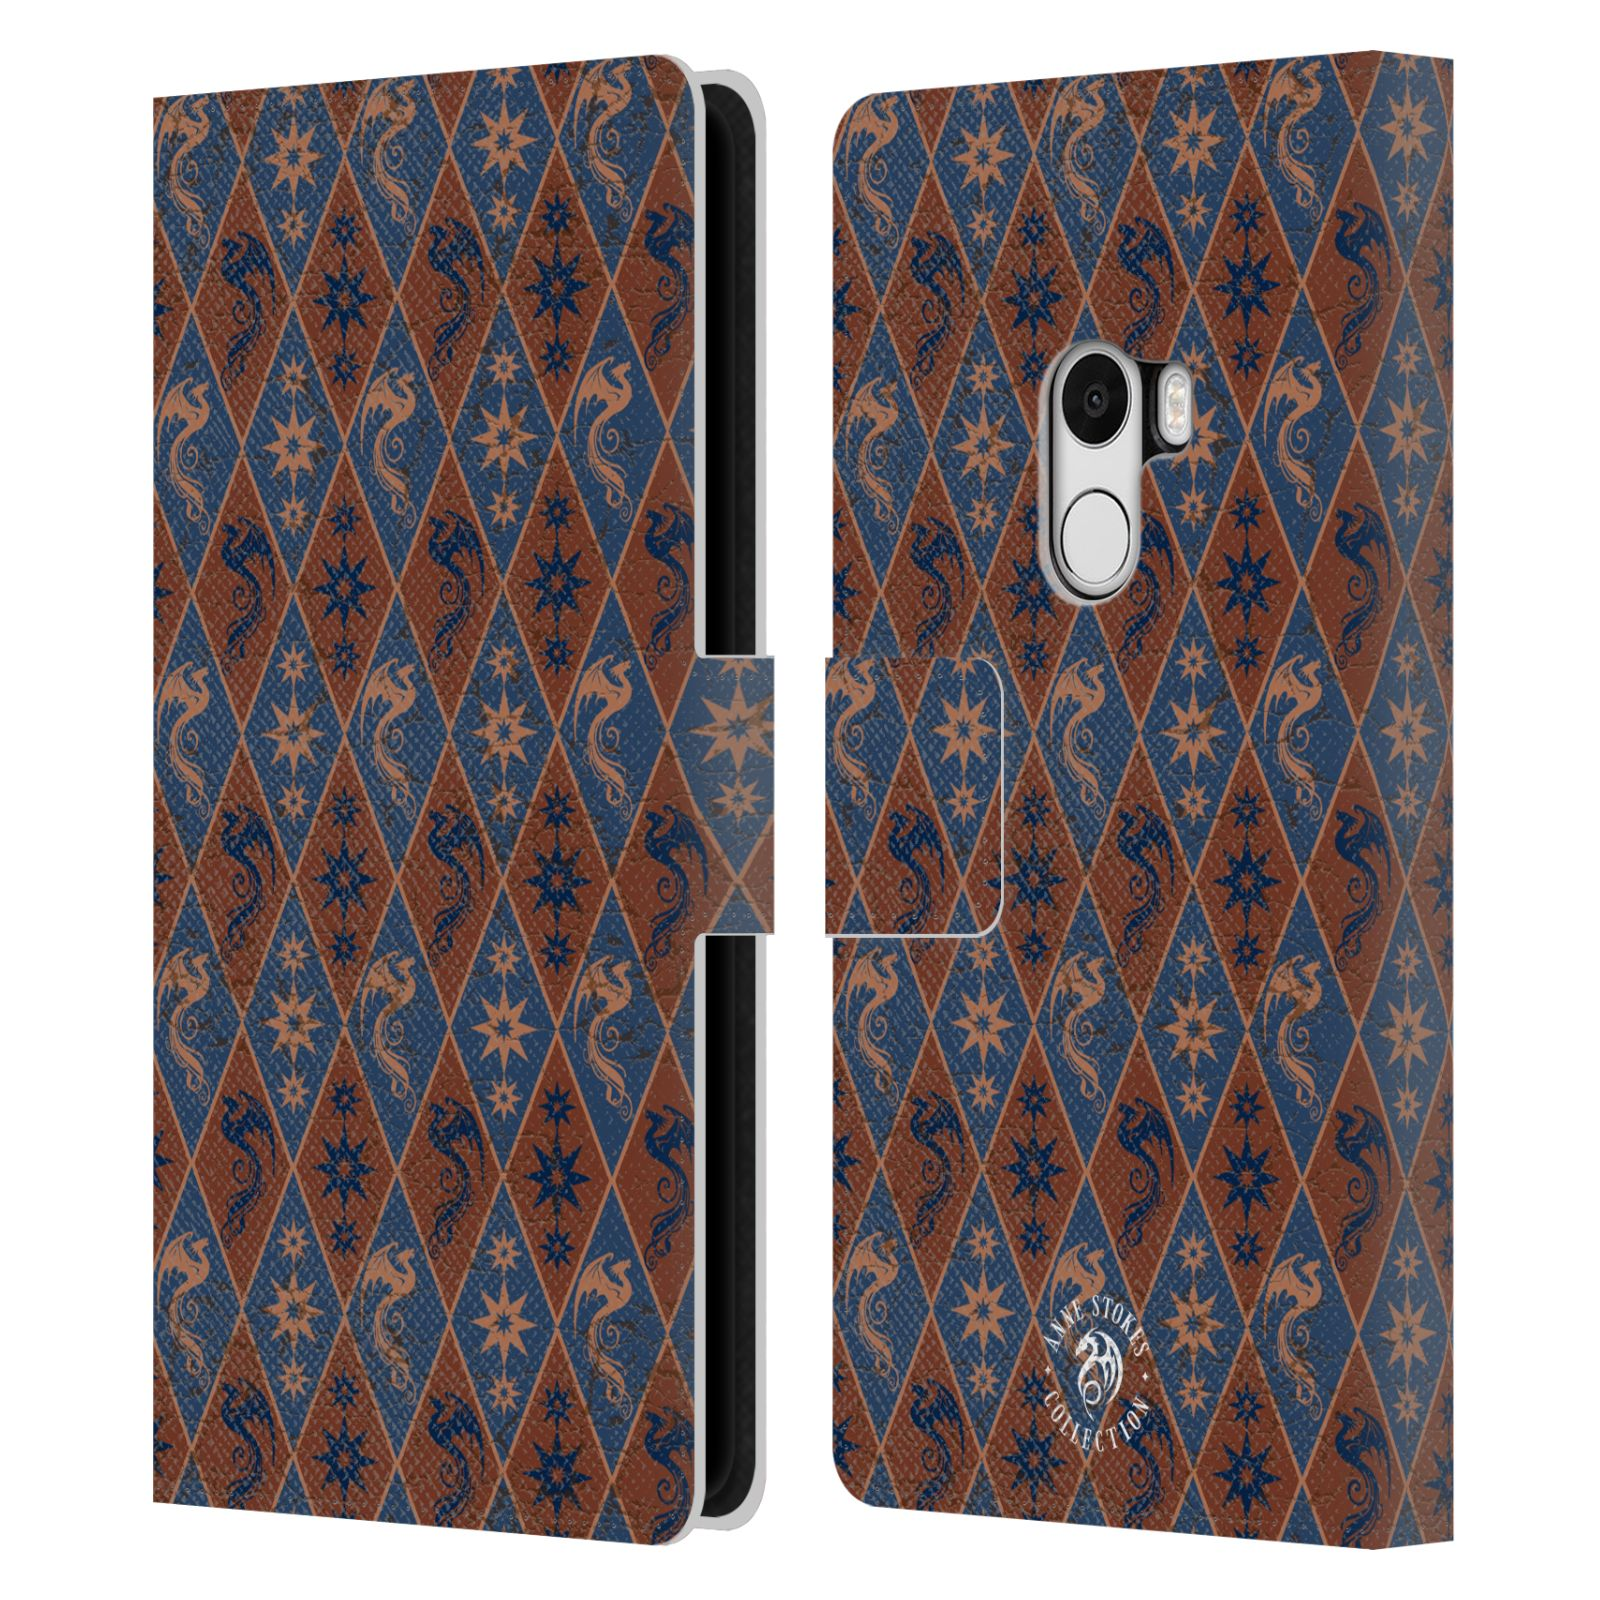 OFFICIAL-ANNE-STOKES-ORNAMENTS-LEATHER-BOOK-WALLET-CASE-COVER-FOR-XIAOMI-PHONES